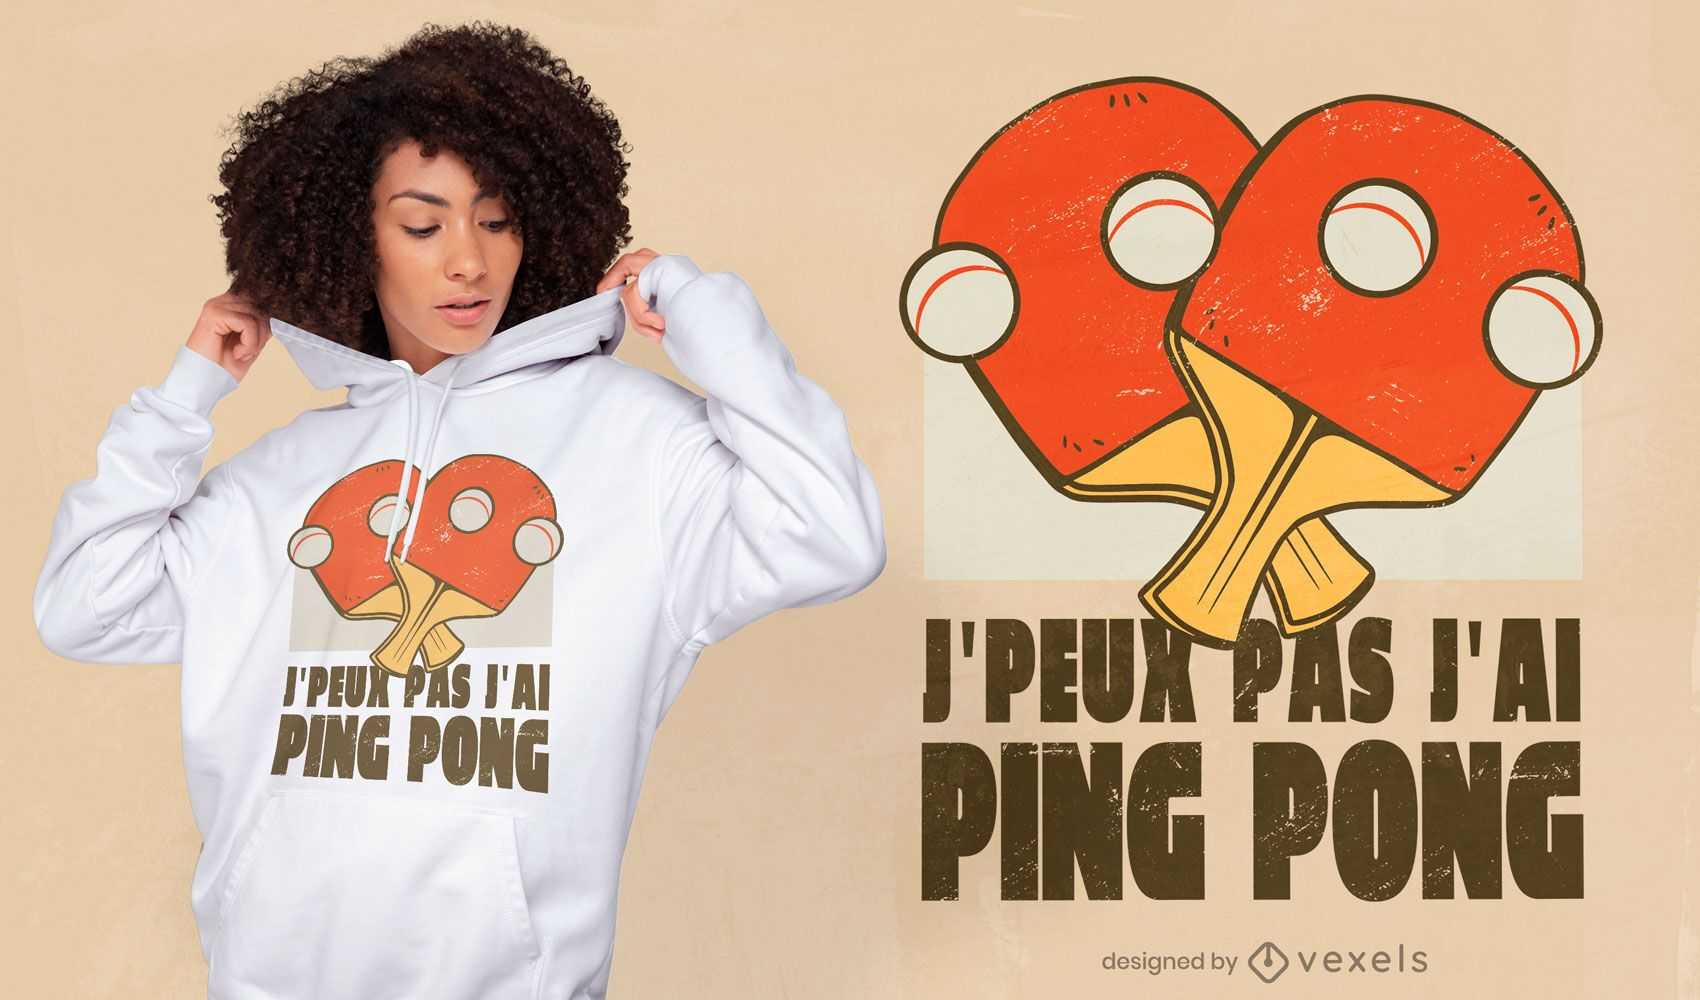 Ping pong sport quote t-shirt design